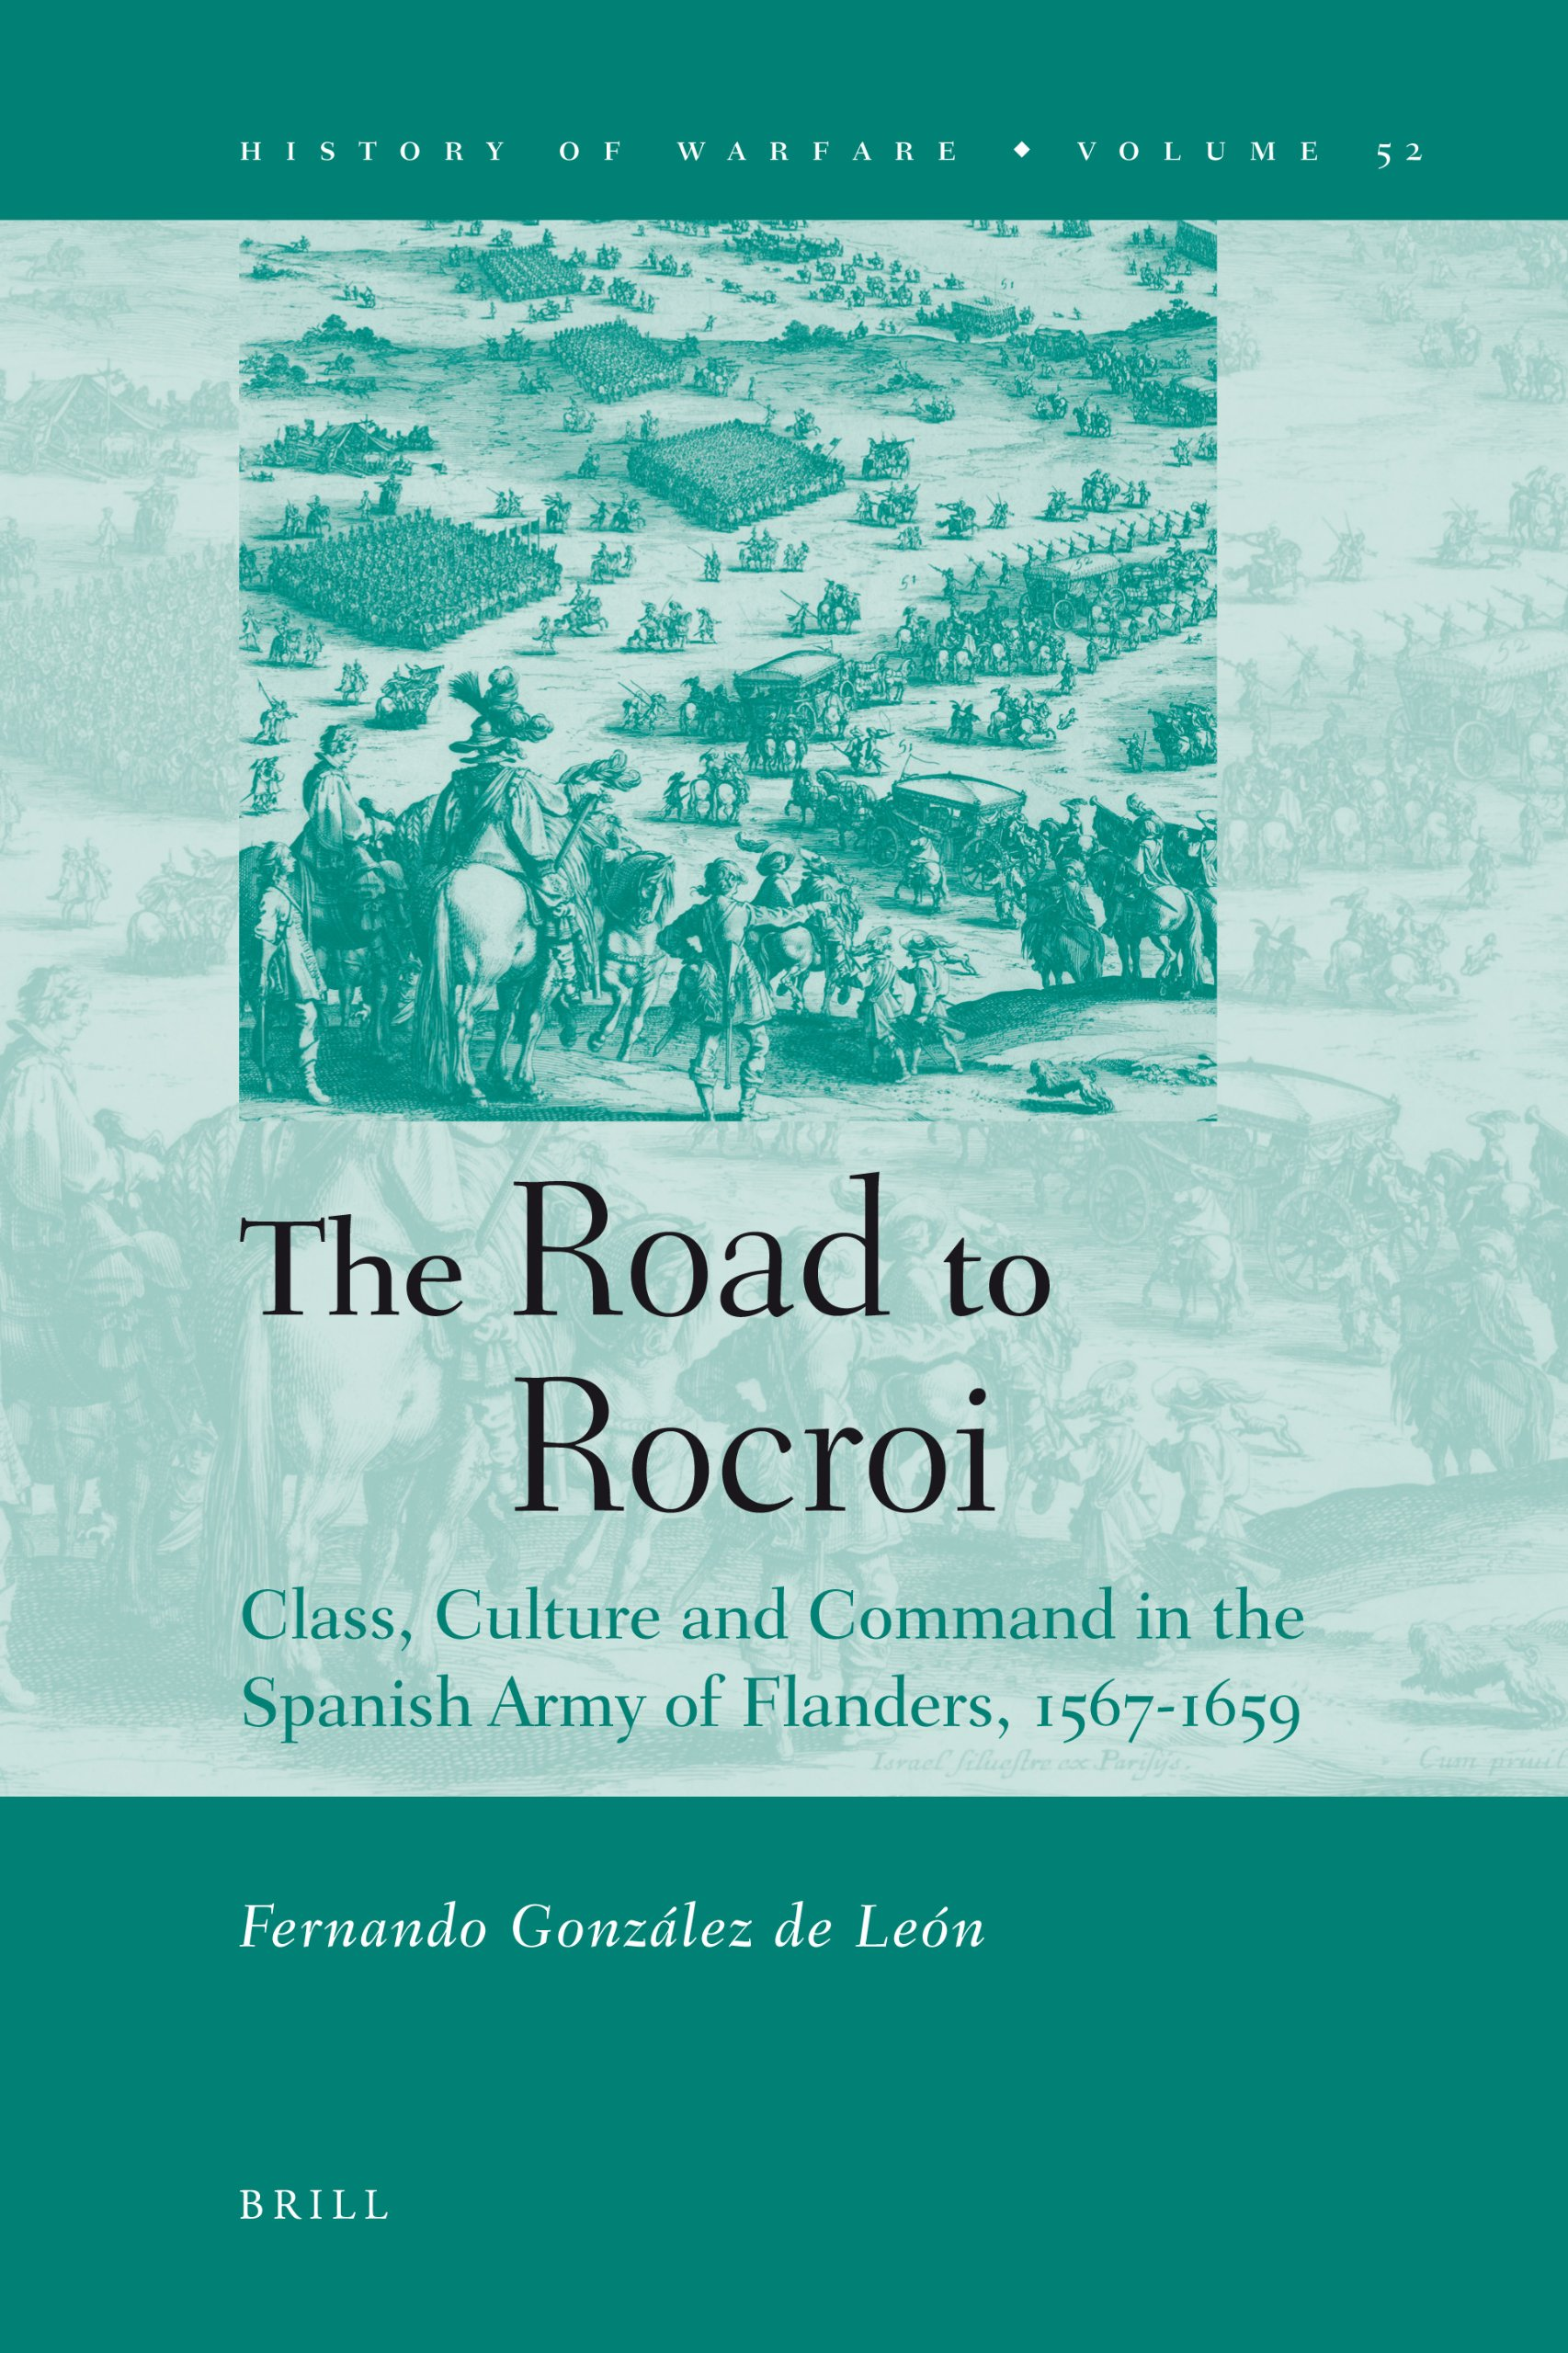 The Road to Rocroi (History of Warfare)